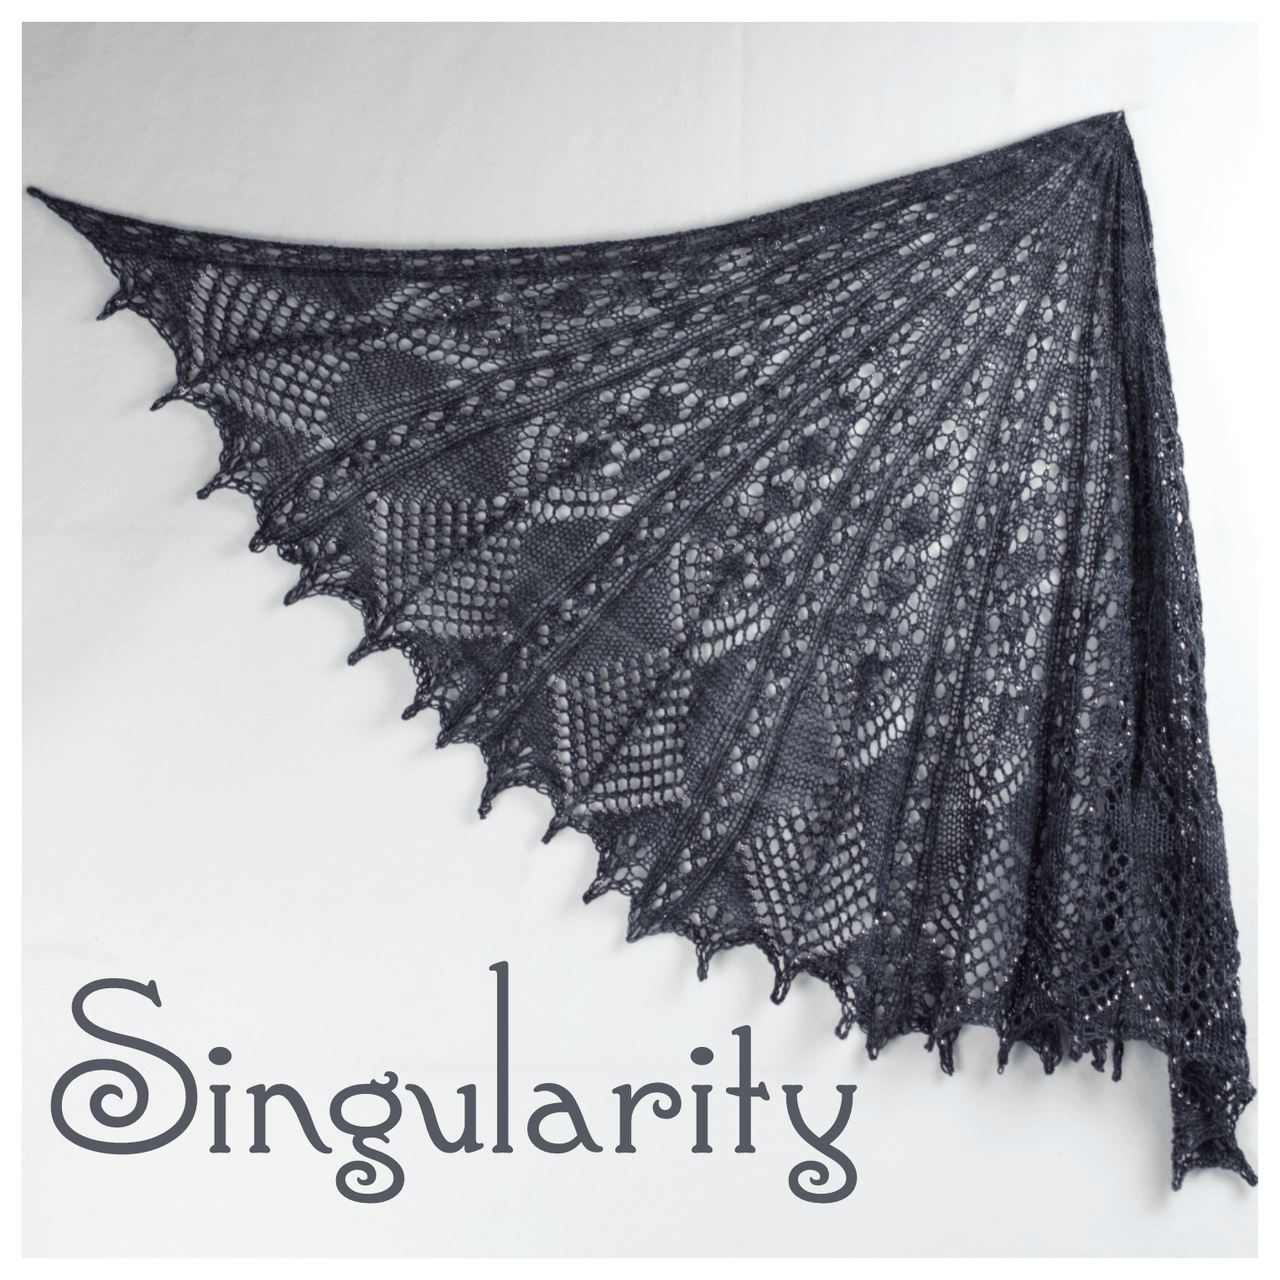 Singularity Twinkle Shawl Kit